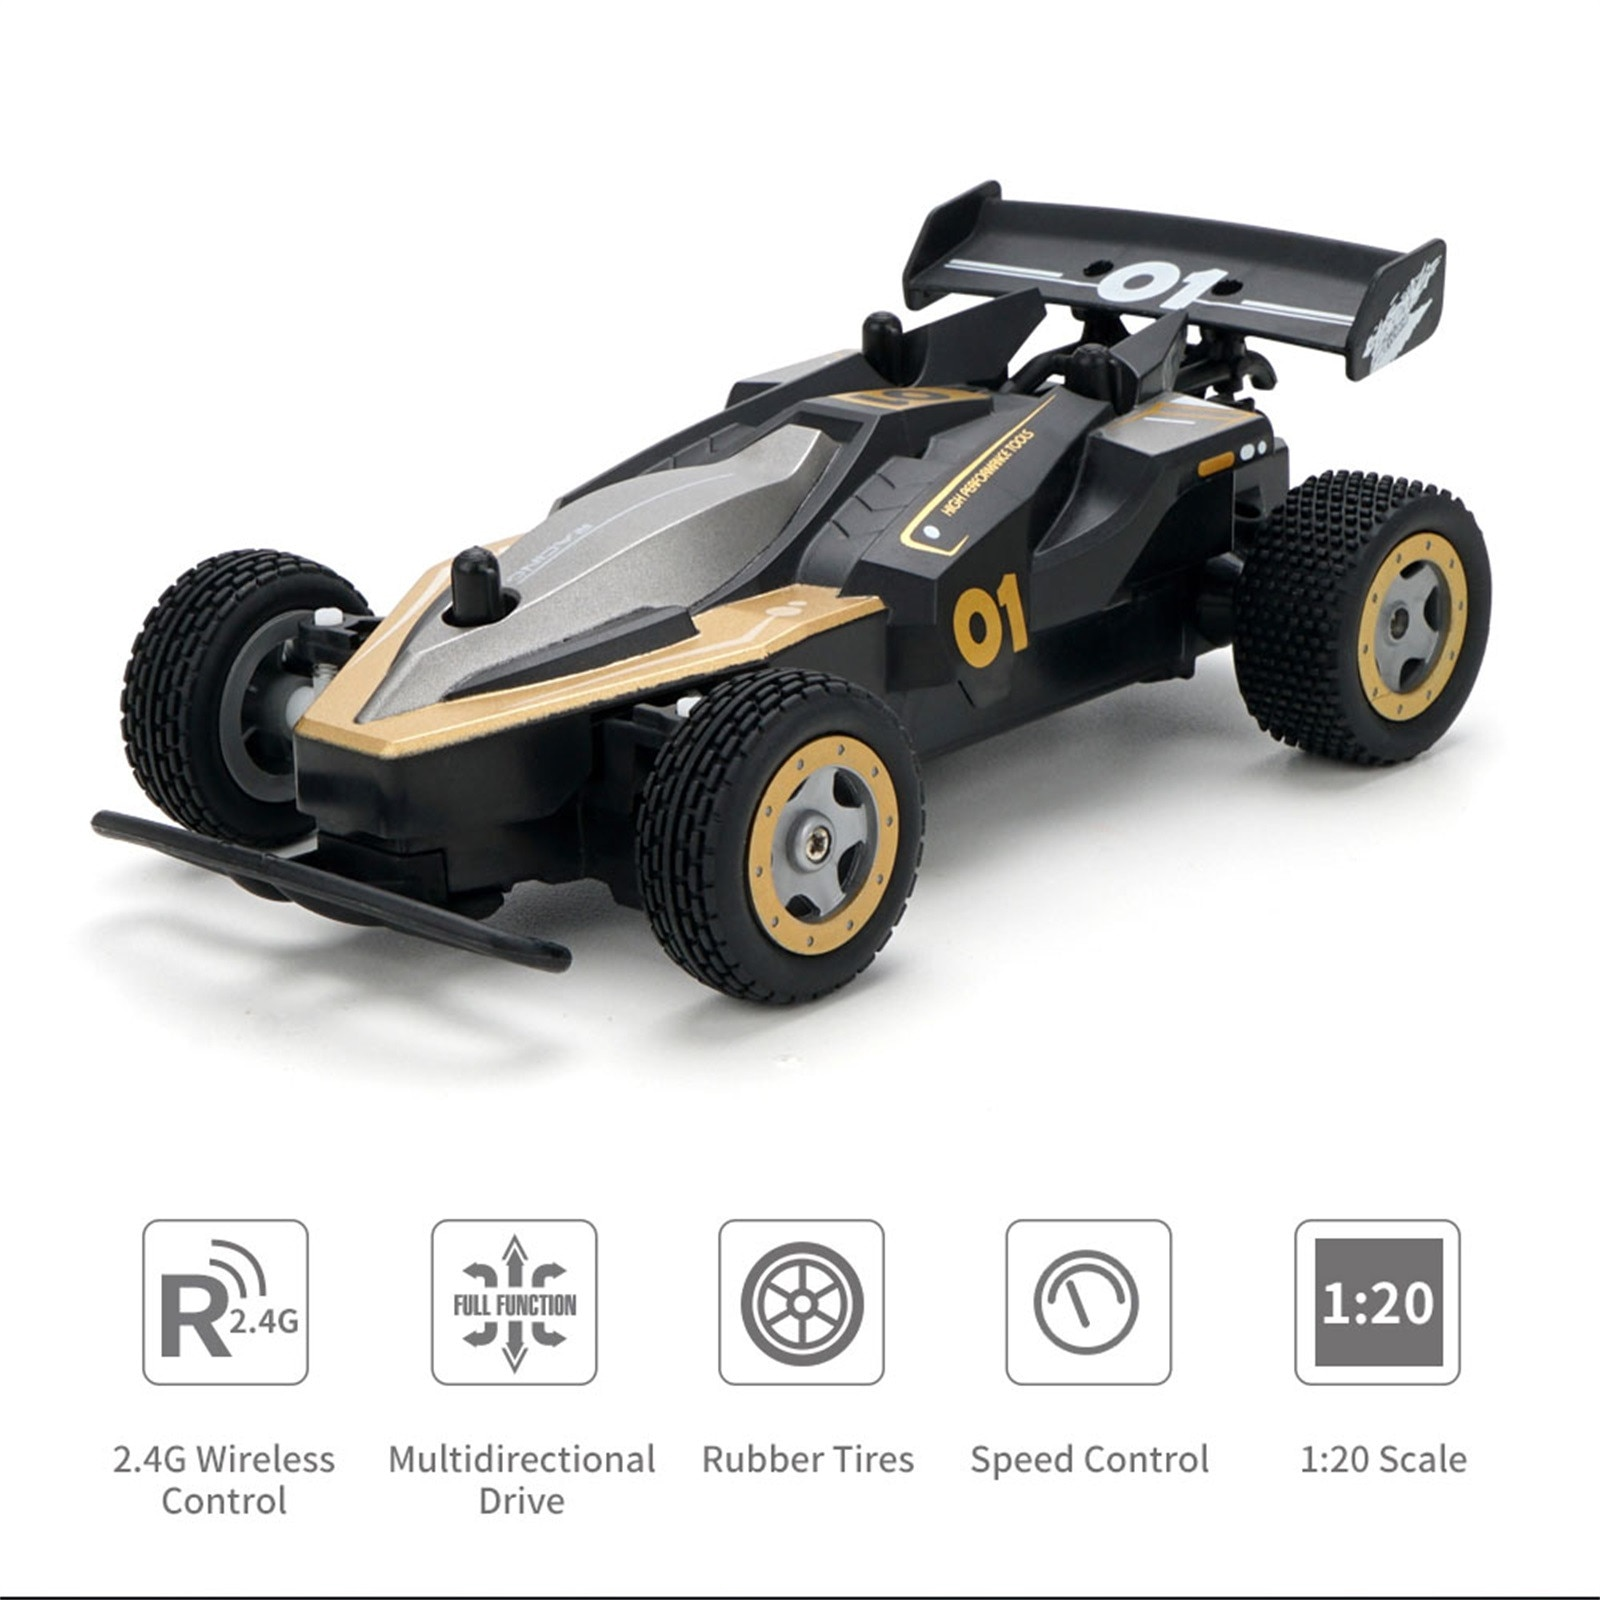 JJR/CQ91 1:20 2.4G 4WD Off-road Remote Control Drift Car High Speed Vehicle Racing RC Car Children's Toy Gift for Boys Kids enlarge